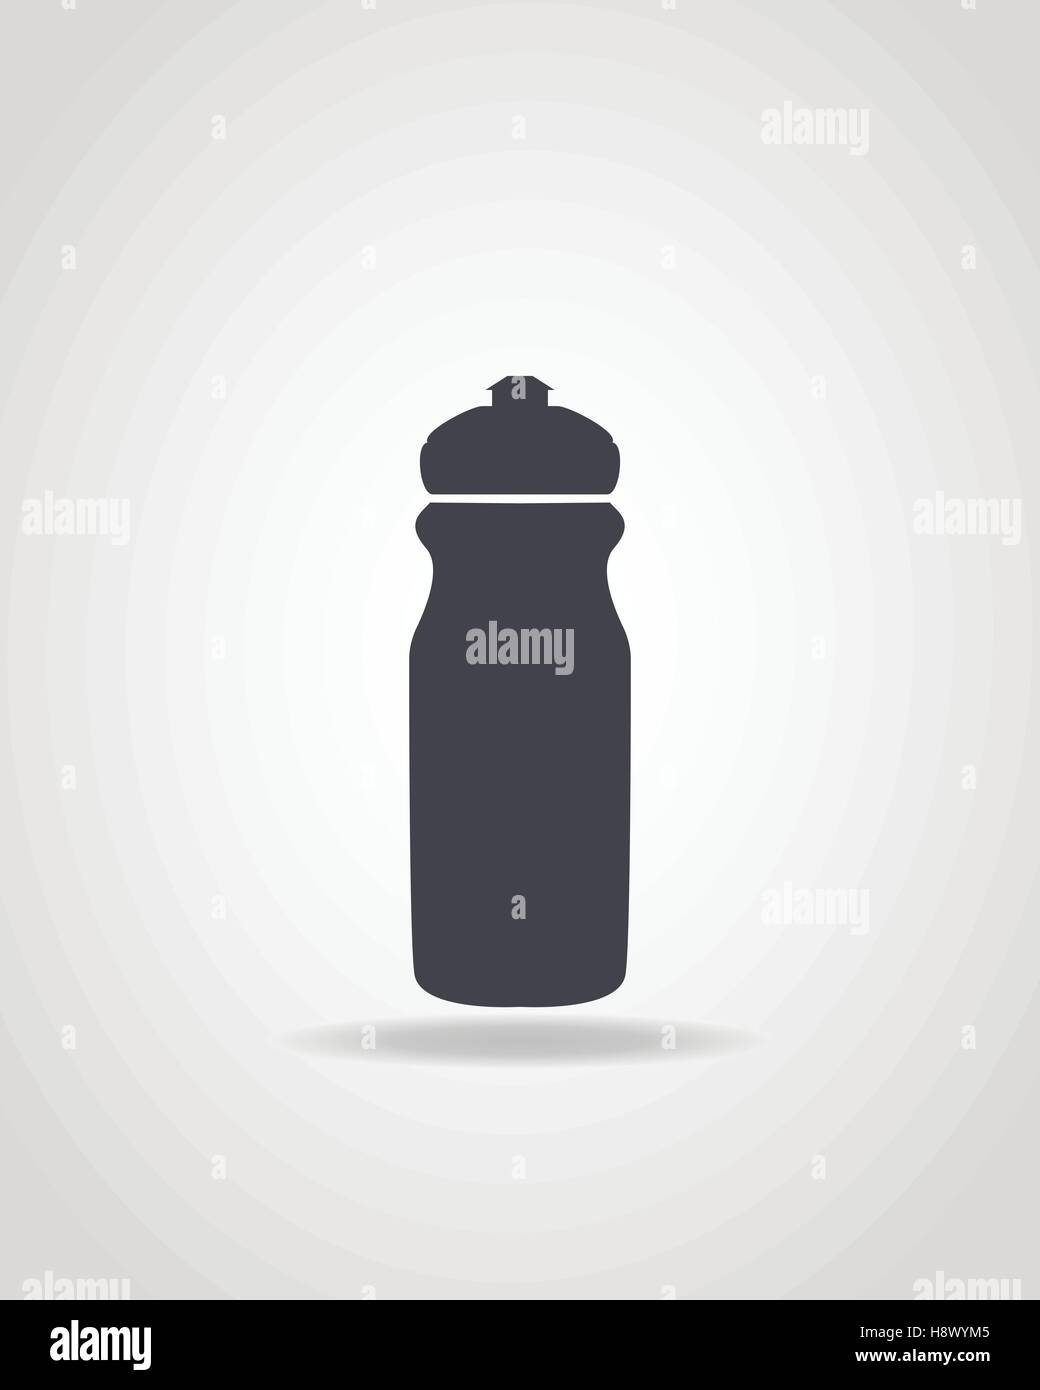 Simple black icon of sport water bottle. - Stock Vector